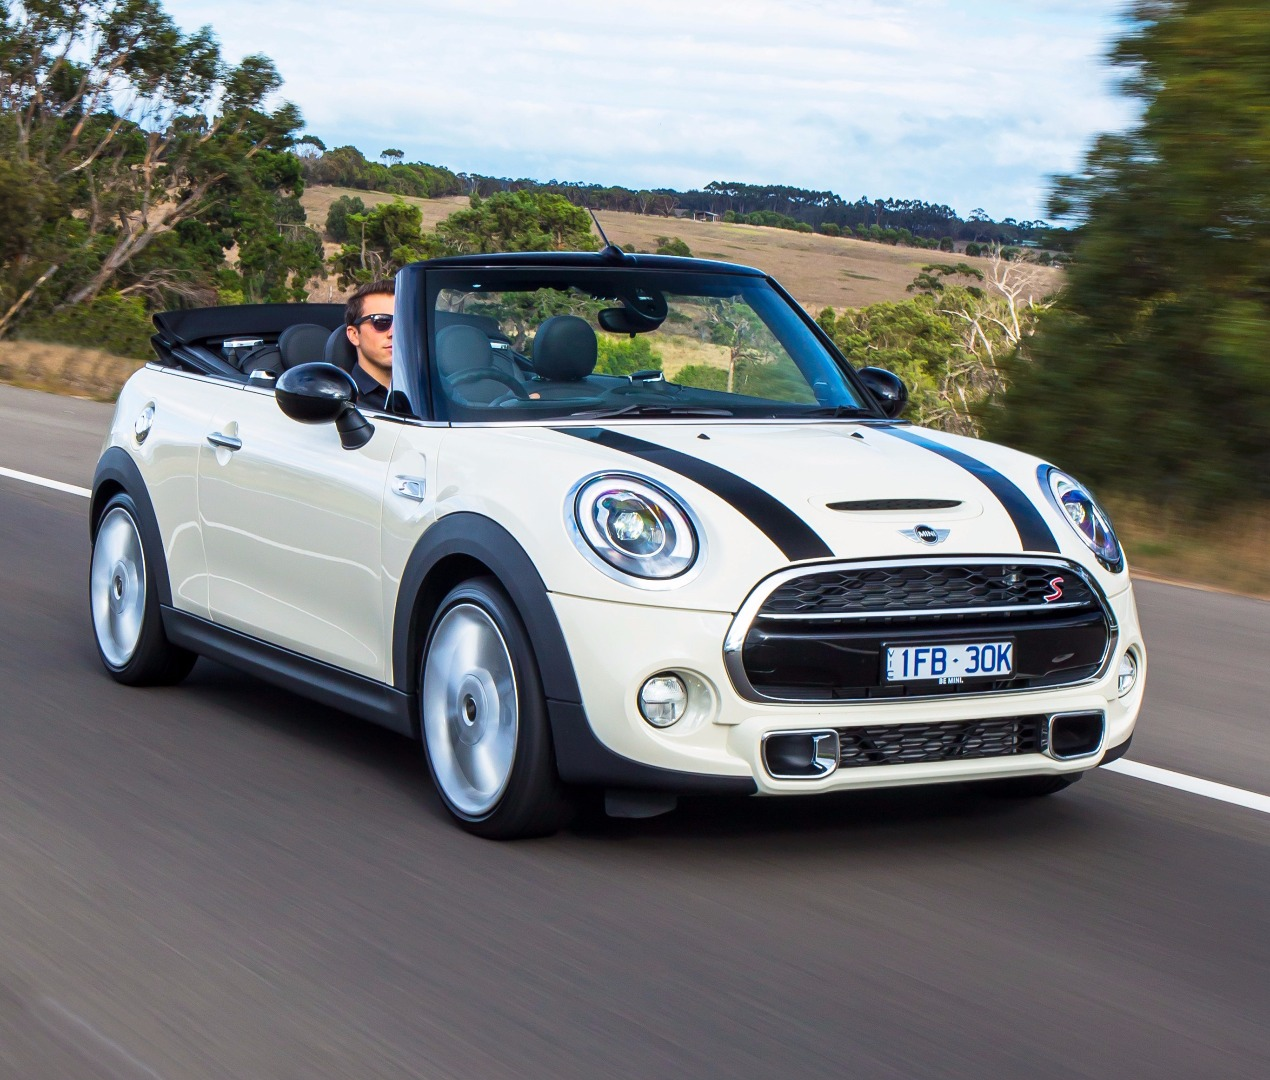 Used Mini Cooper Convertible >> Review - 2016 MINI Cooper S Convertible - Full Review